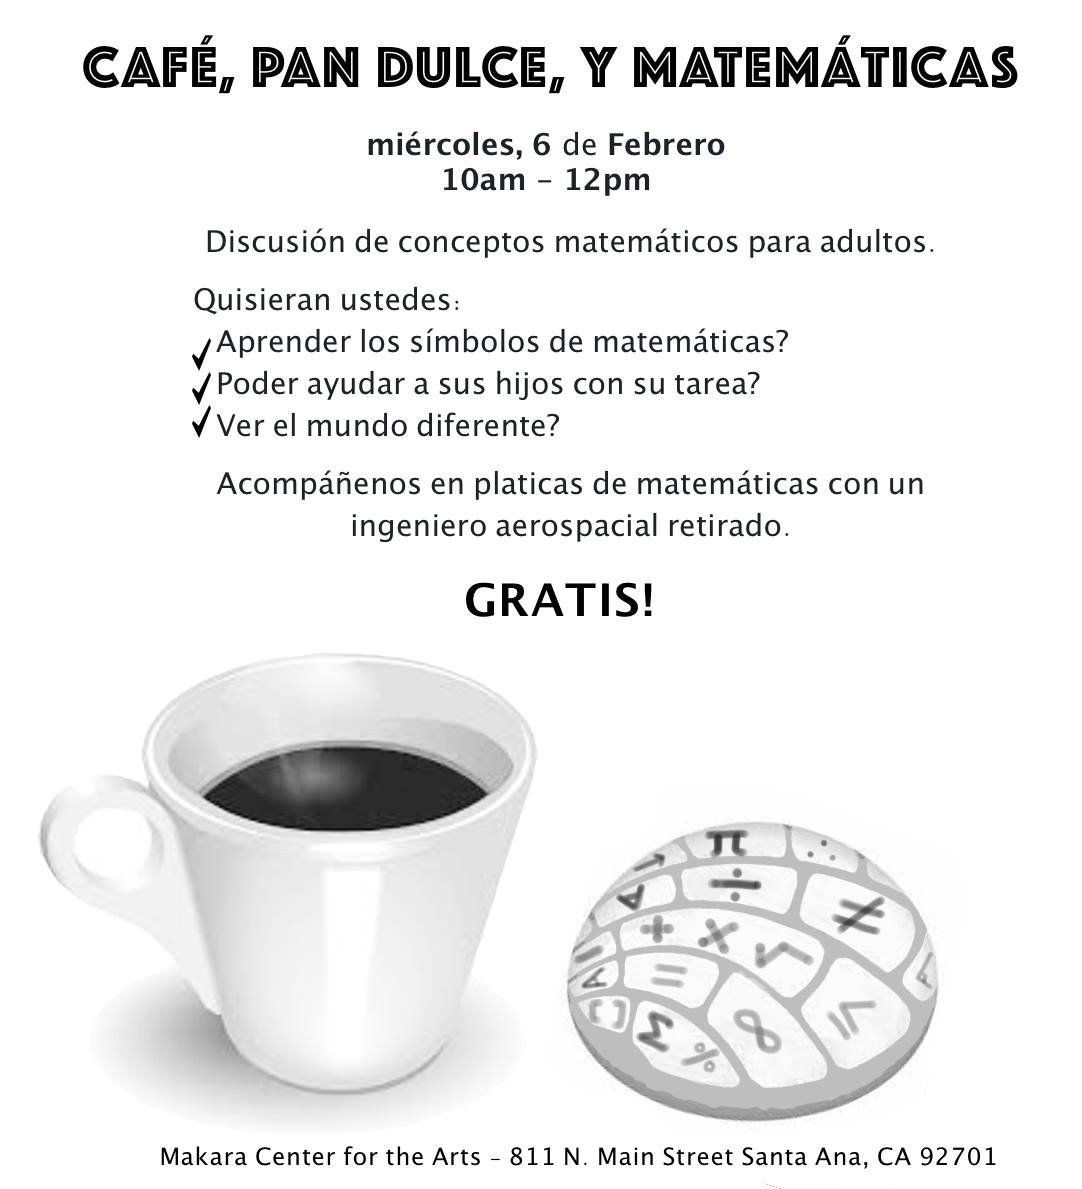 cafe pan dulce math.jpg